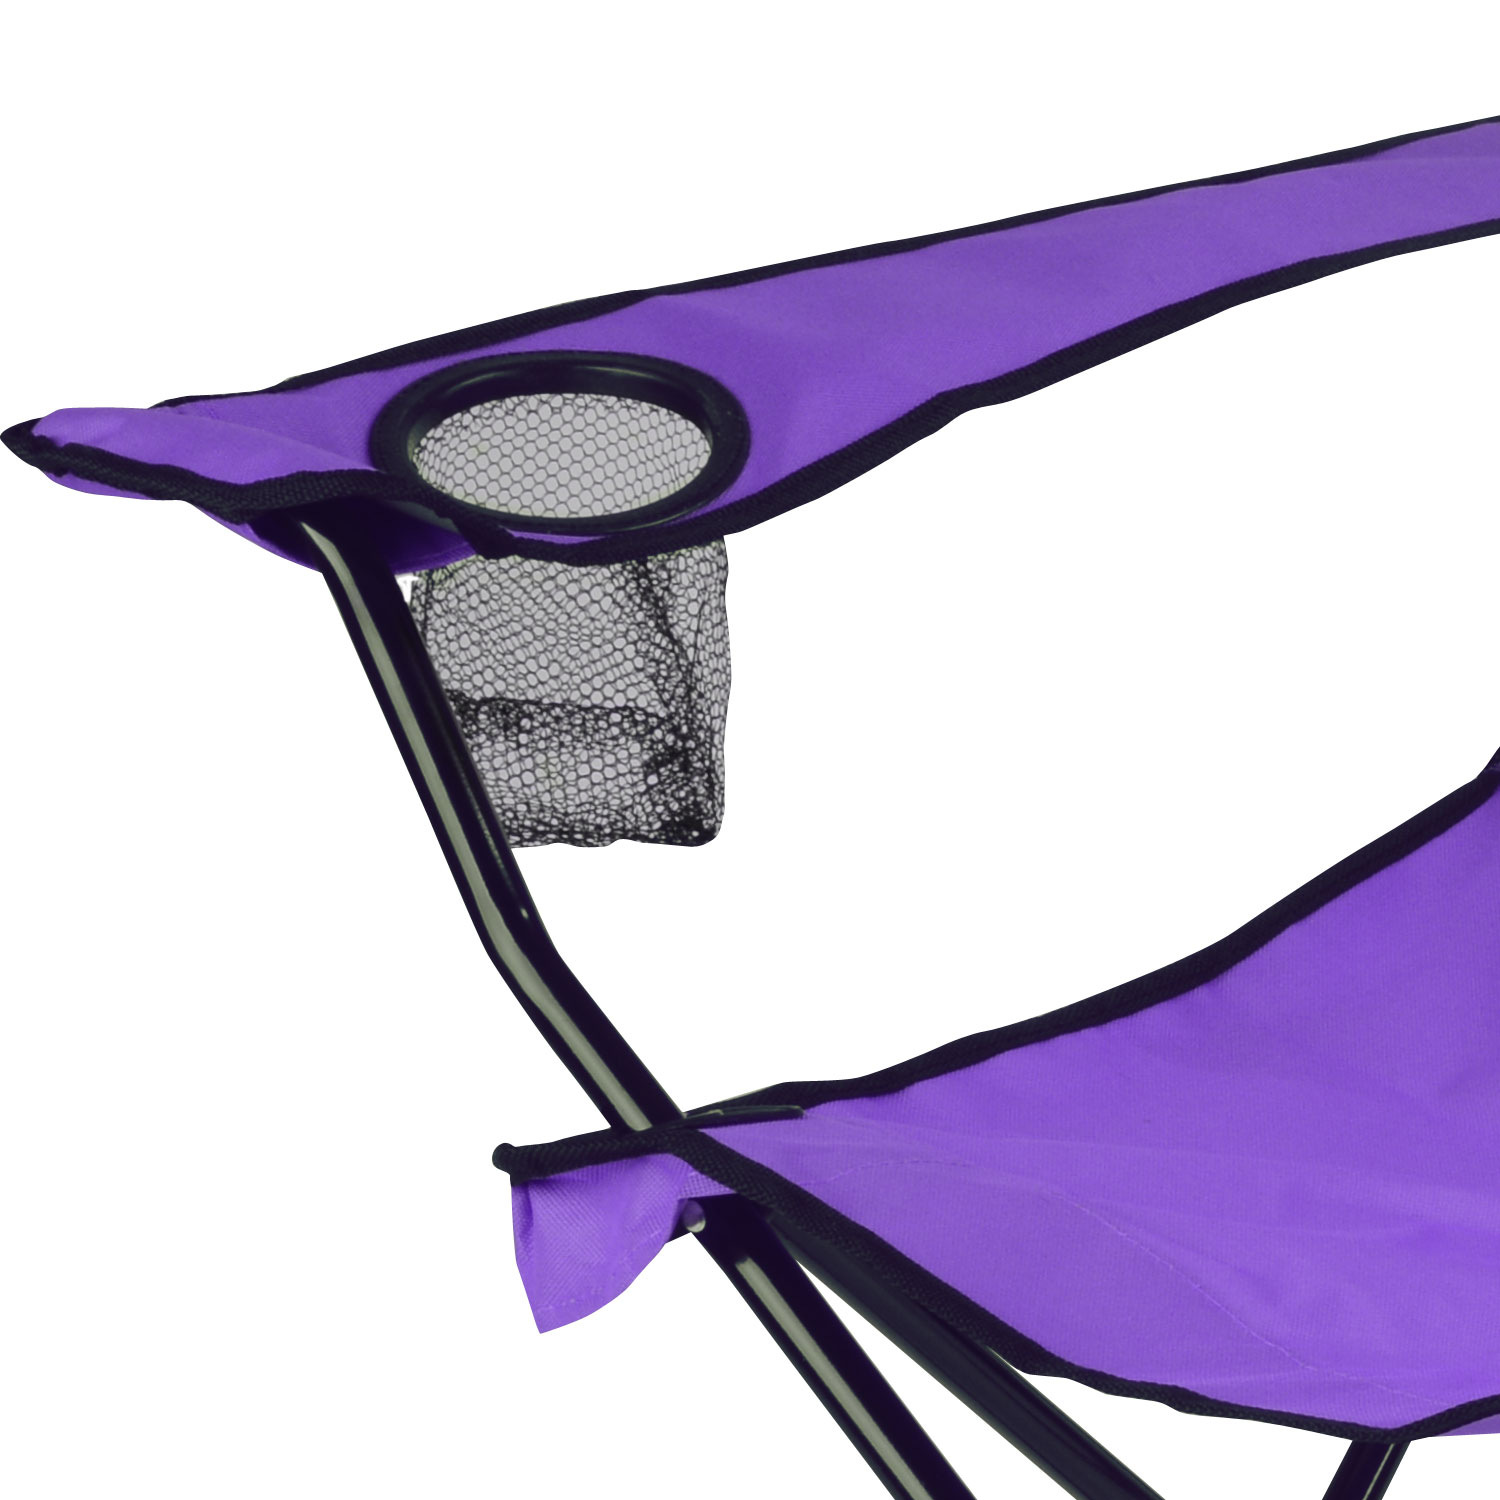 Folding Foldable Camping Beach Chair Fold Up Camp Festival Seat Fishing Chair